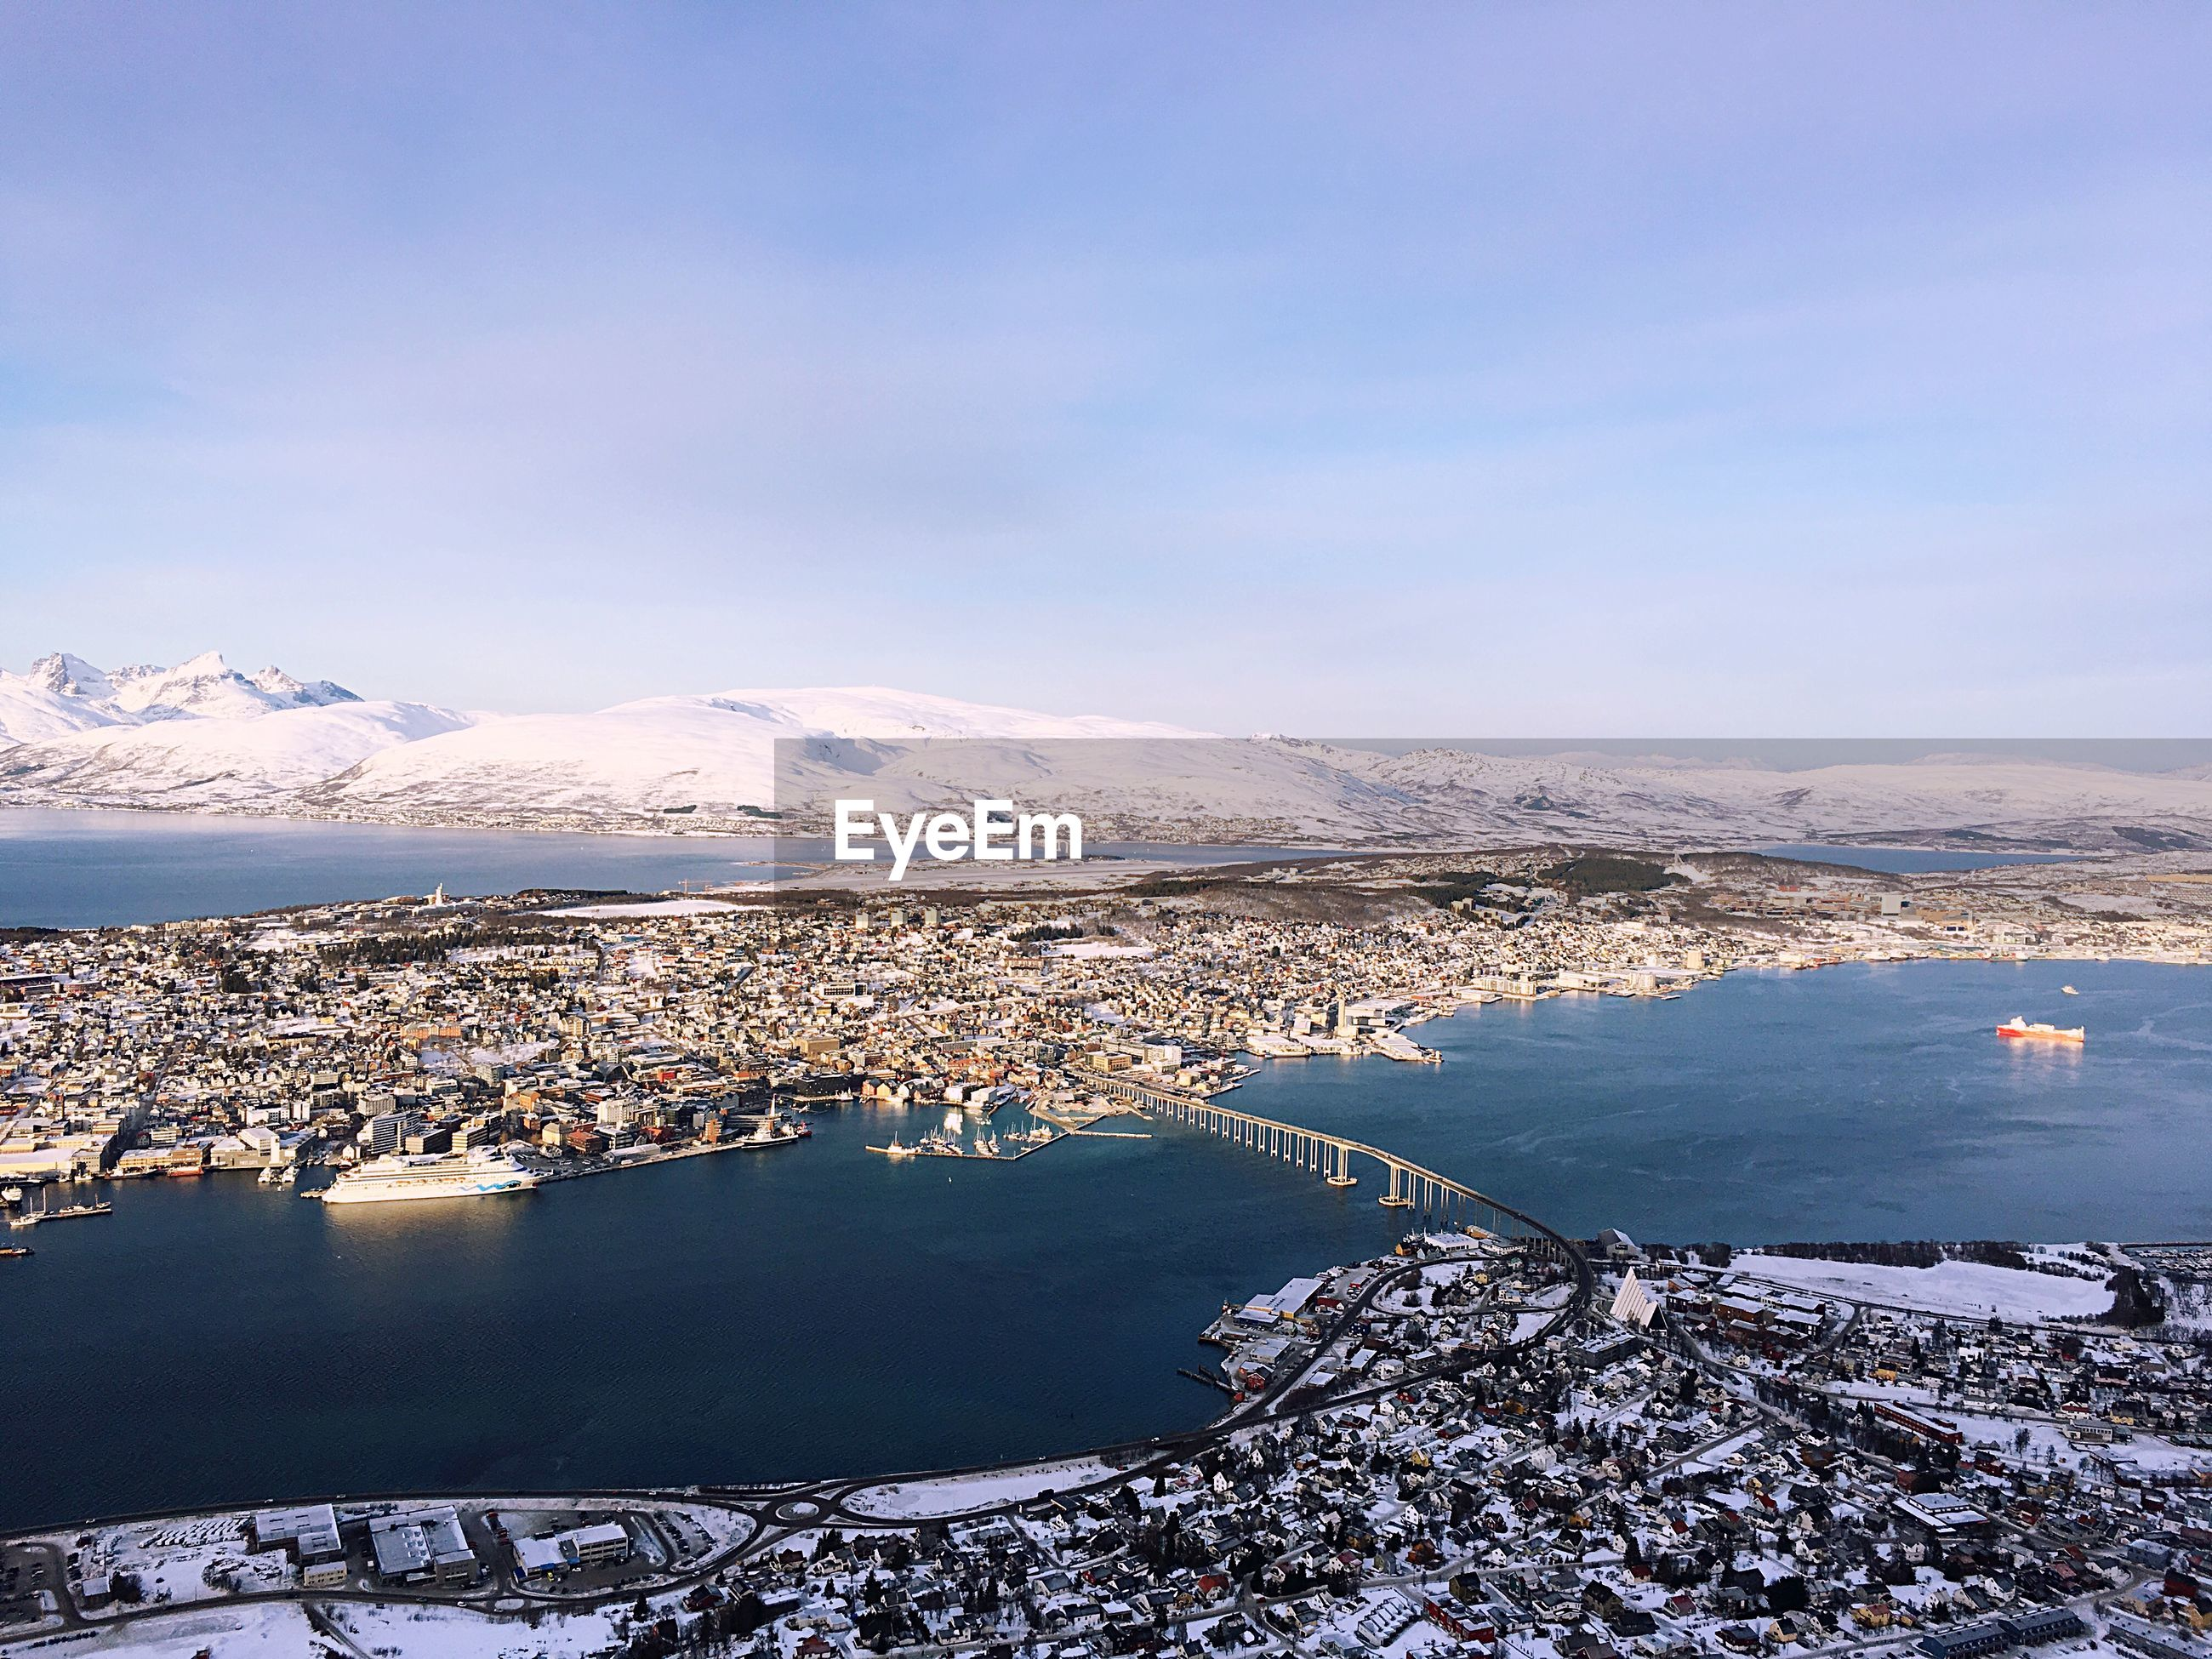 AERIAL VIEW OF CITY BY SEA DURING WINTER